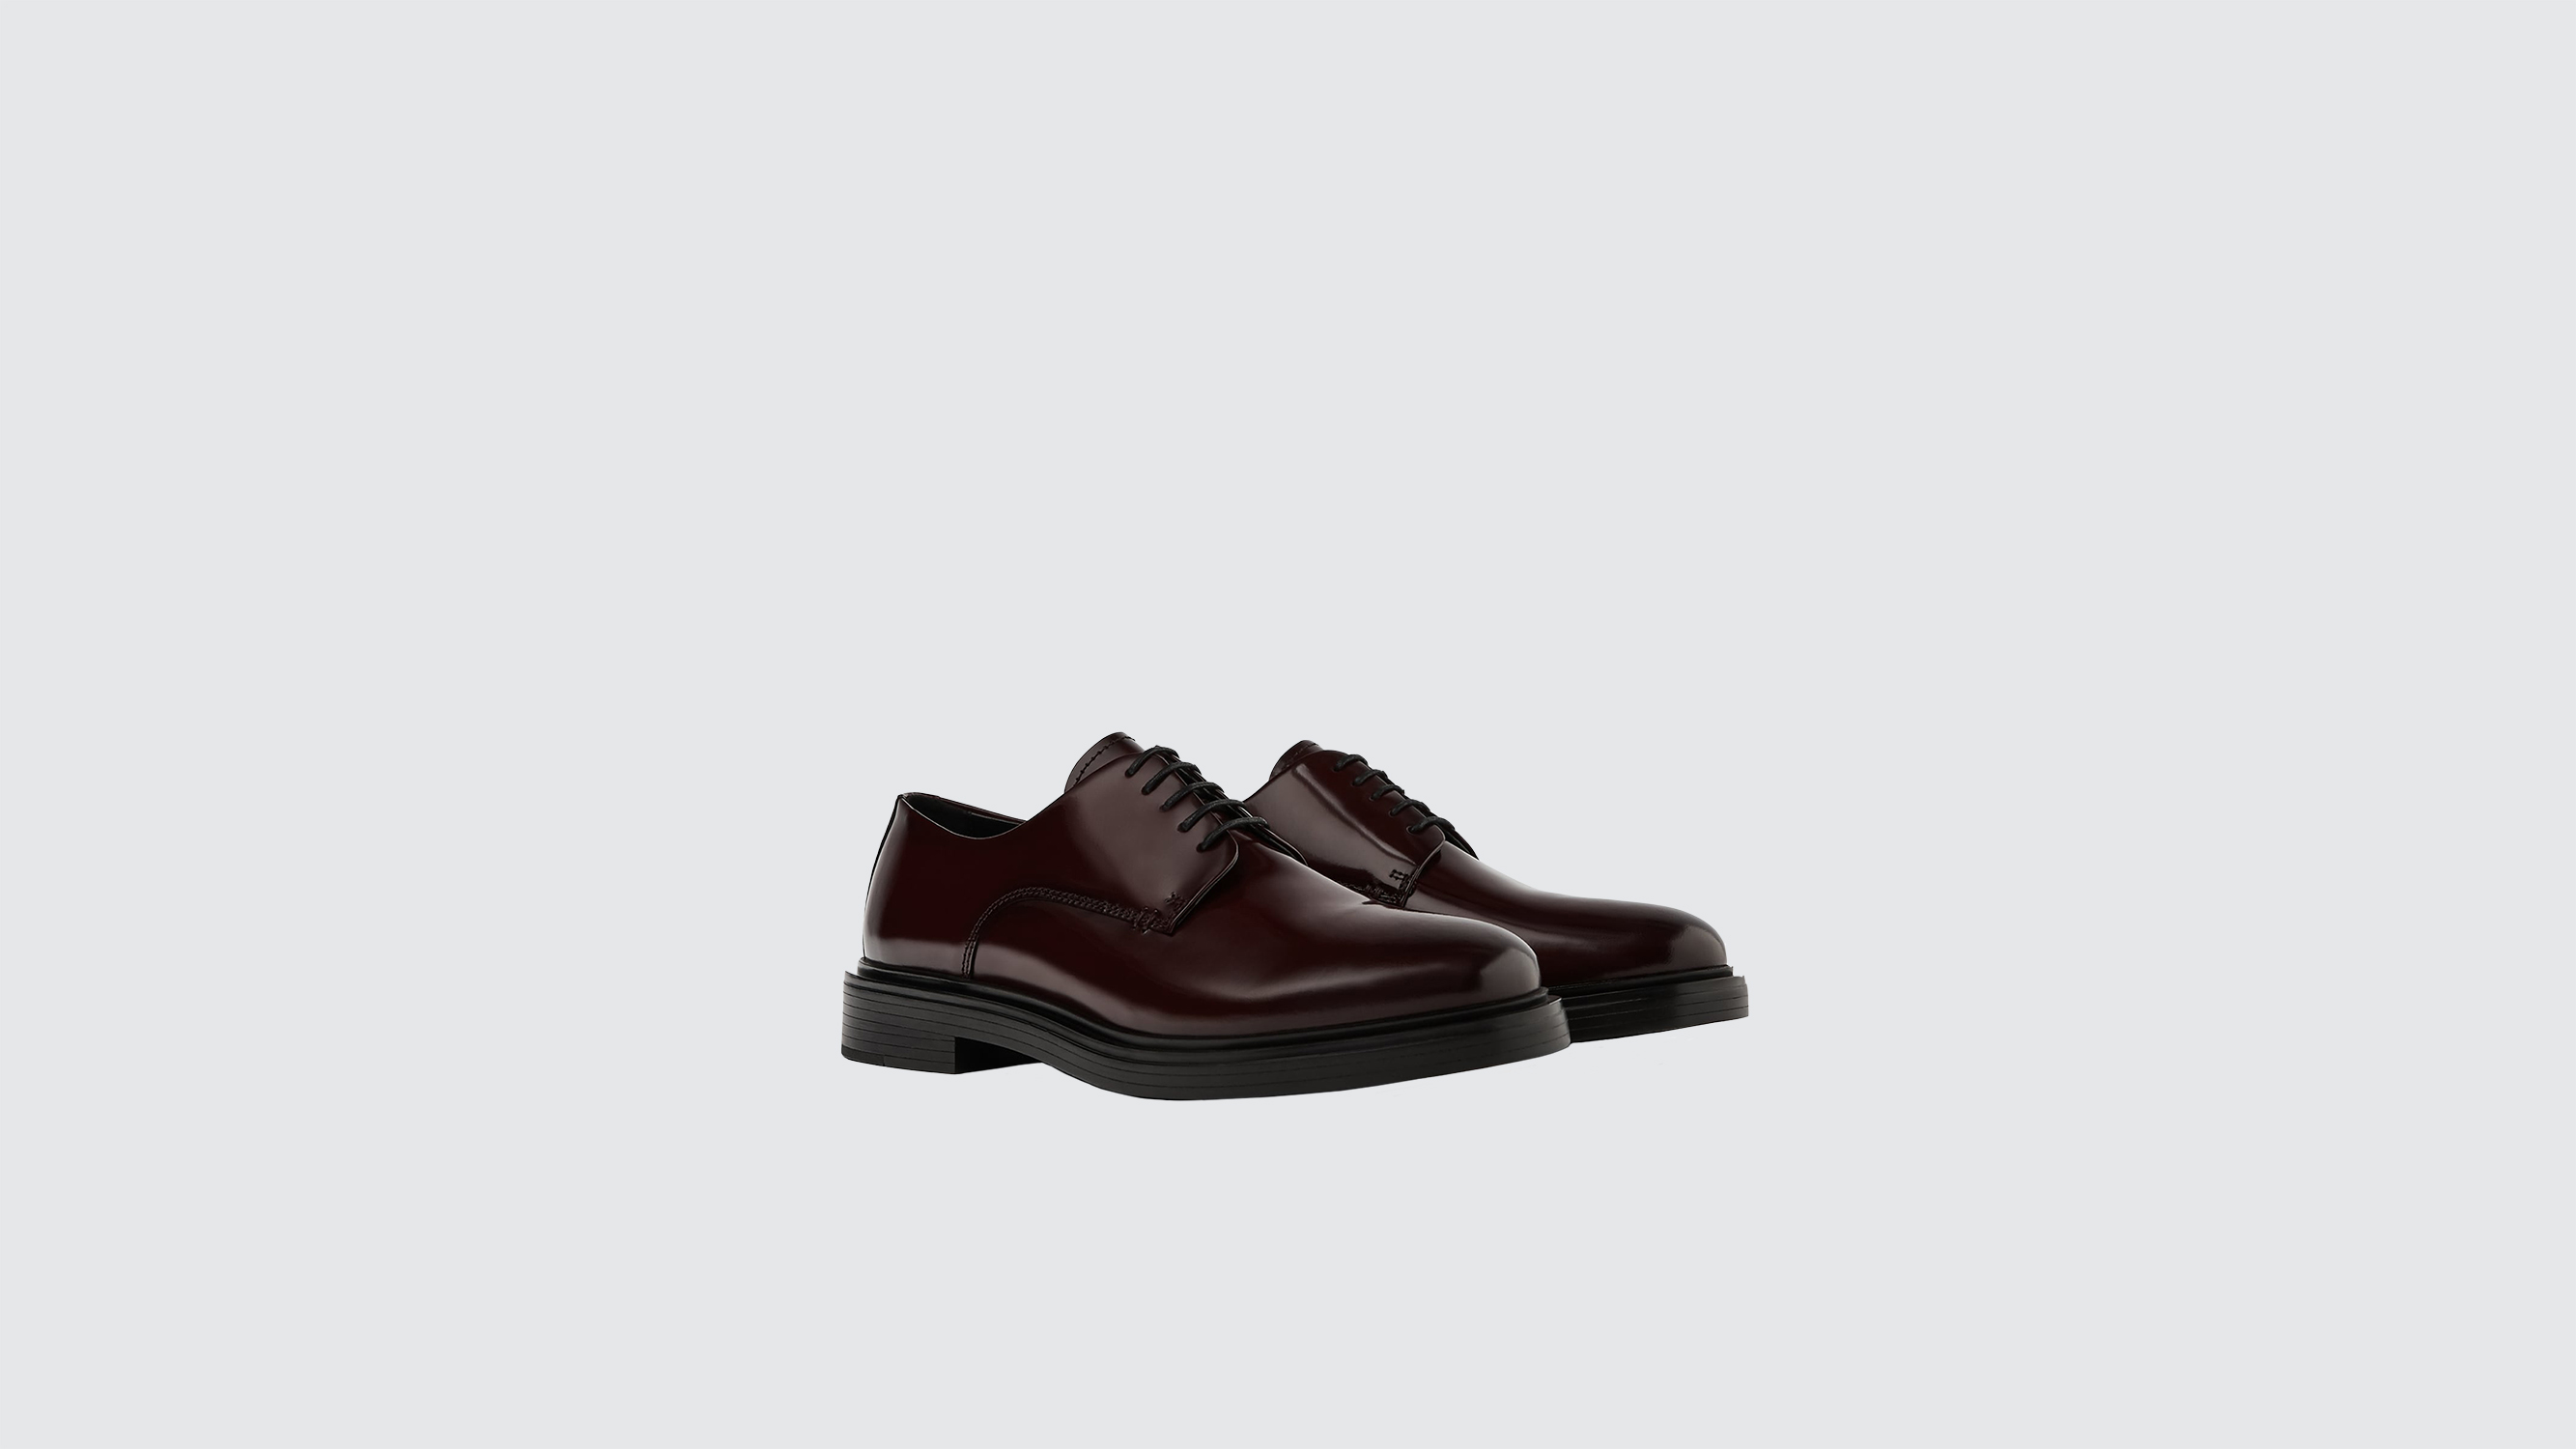 Zara Glossy Finish Leather Shoes